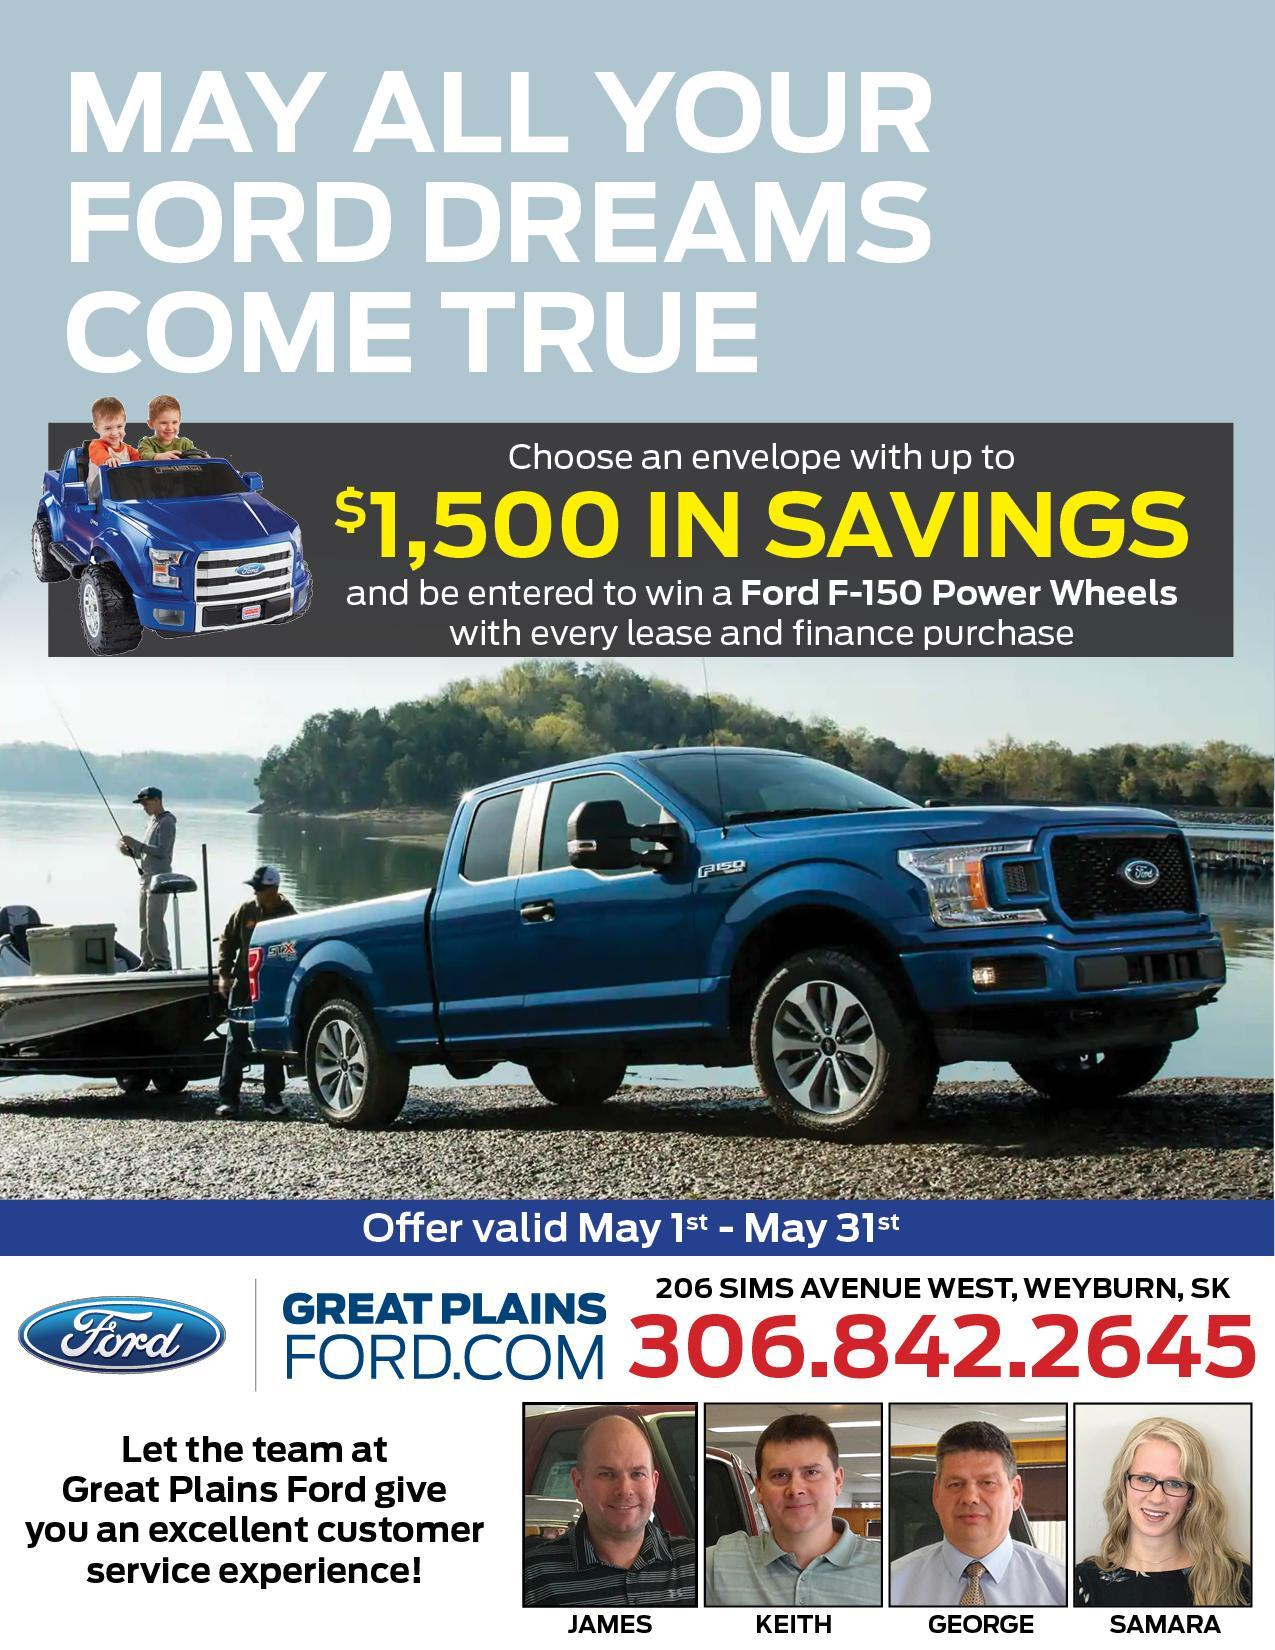 May your Ford dreams come true